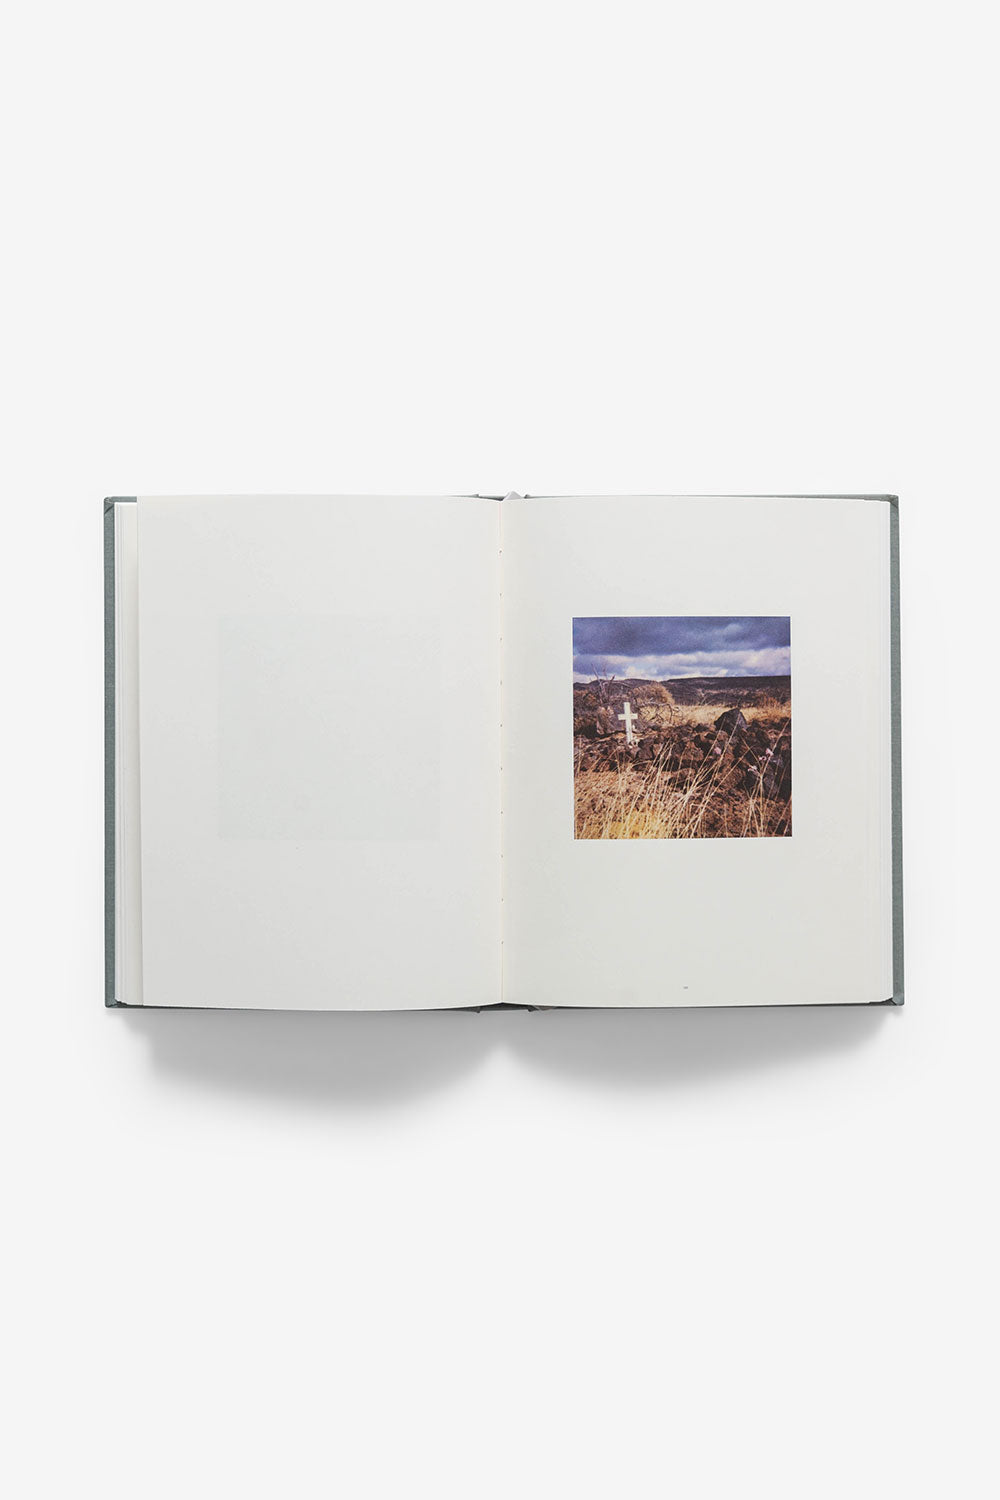 Alabama Chanin Points of Departure Books with Roadside Crosses and Memorials